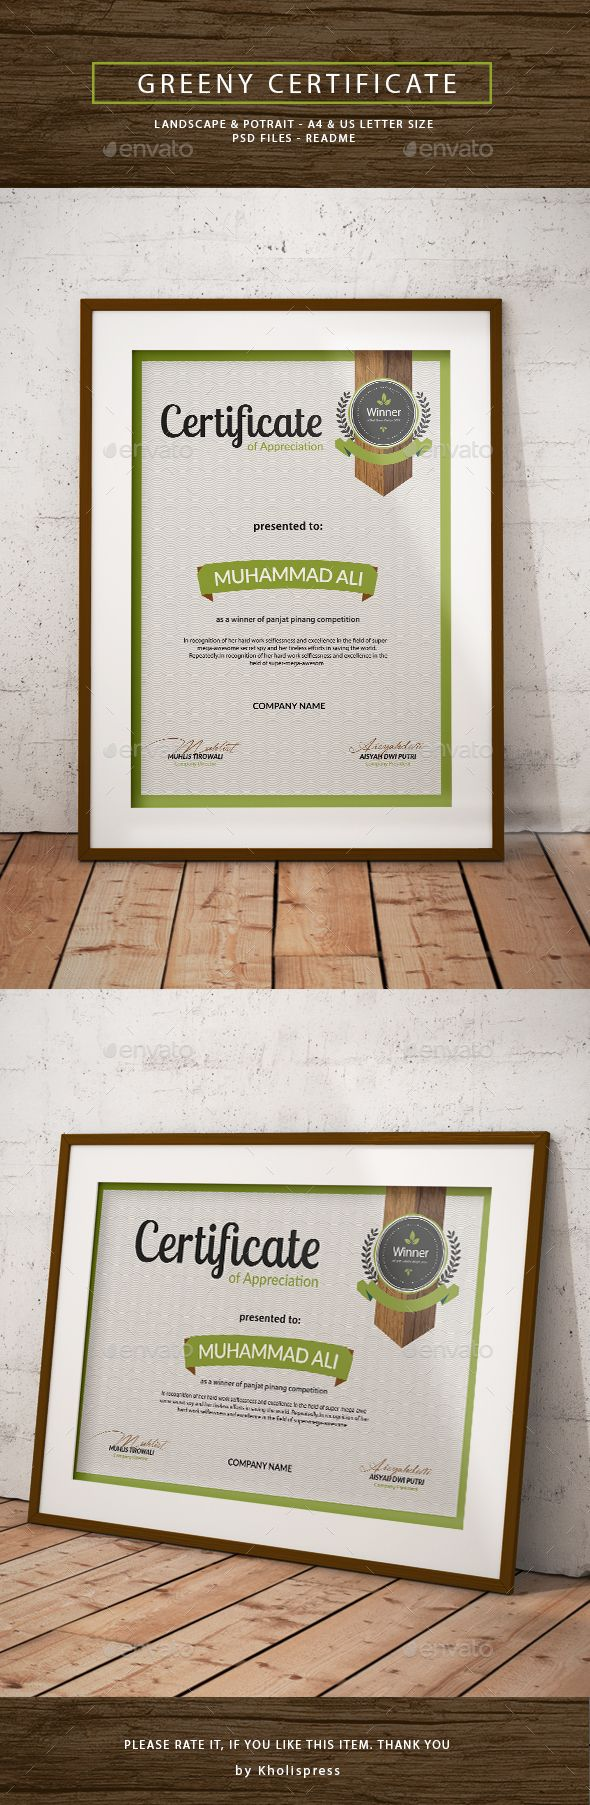 89 best certificate of merit images on pinterest cards font greeny certificate yelopaper Choice Image